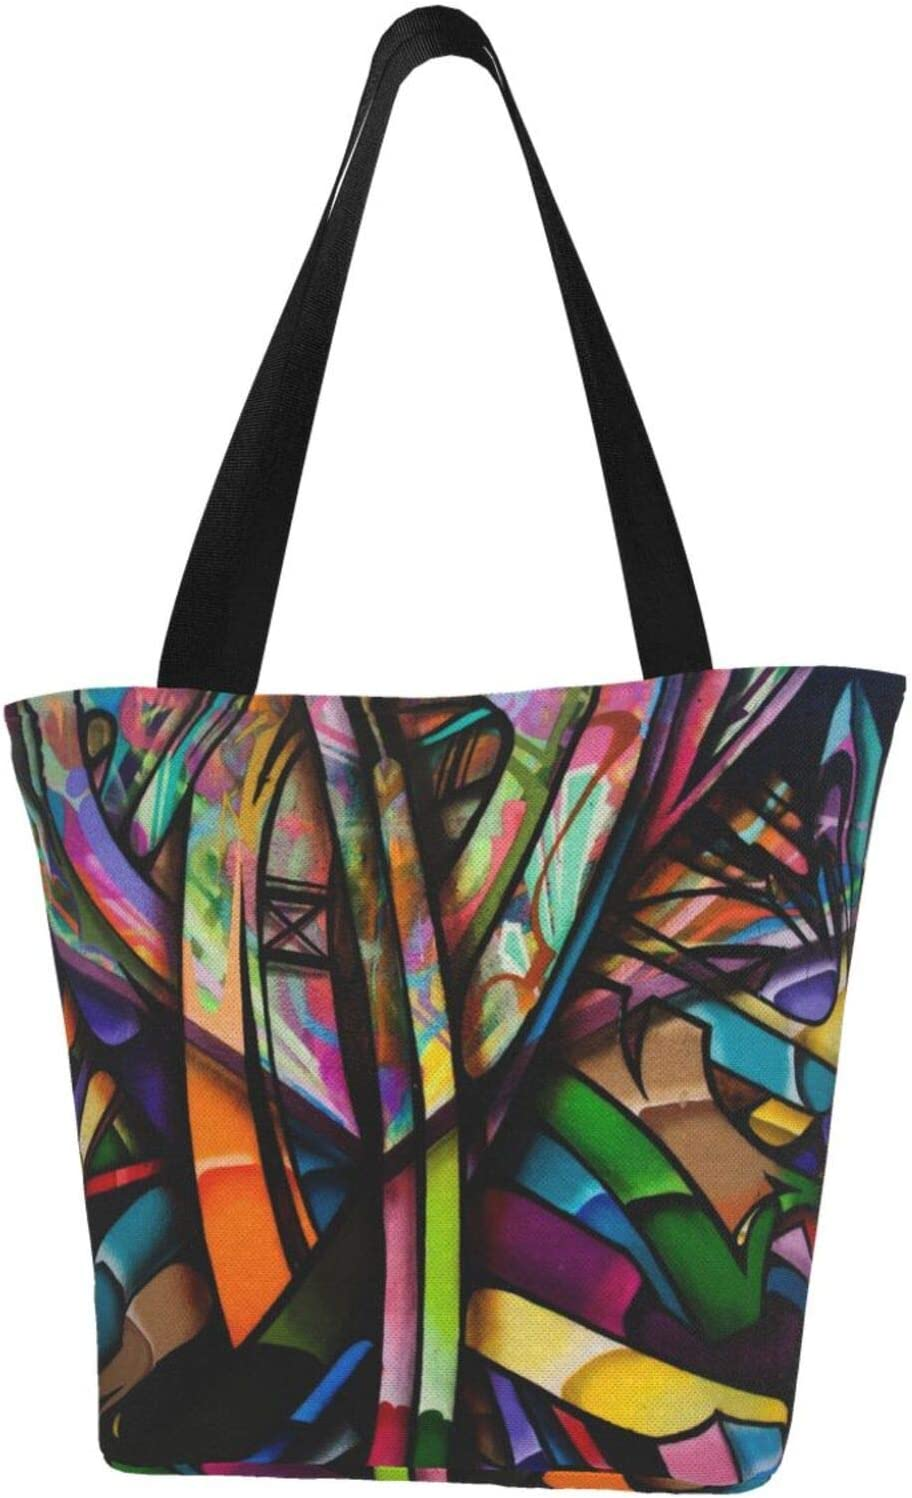 AKLID Black Colored Graffiti Extra Large Milwaukee Mall Resistant Water Canvas Sale Special Price